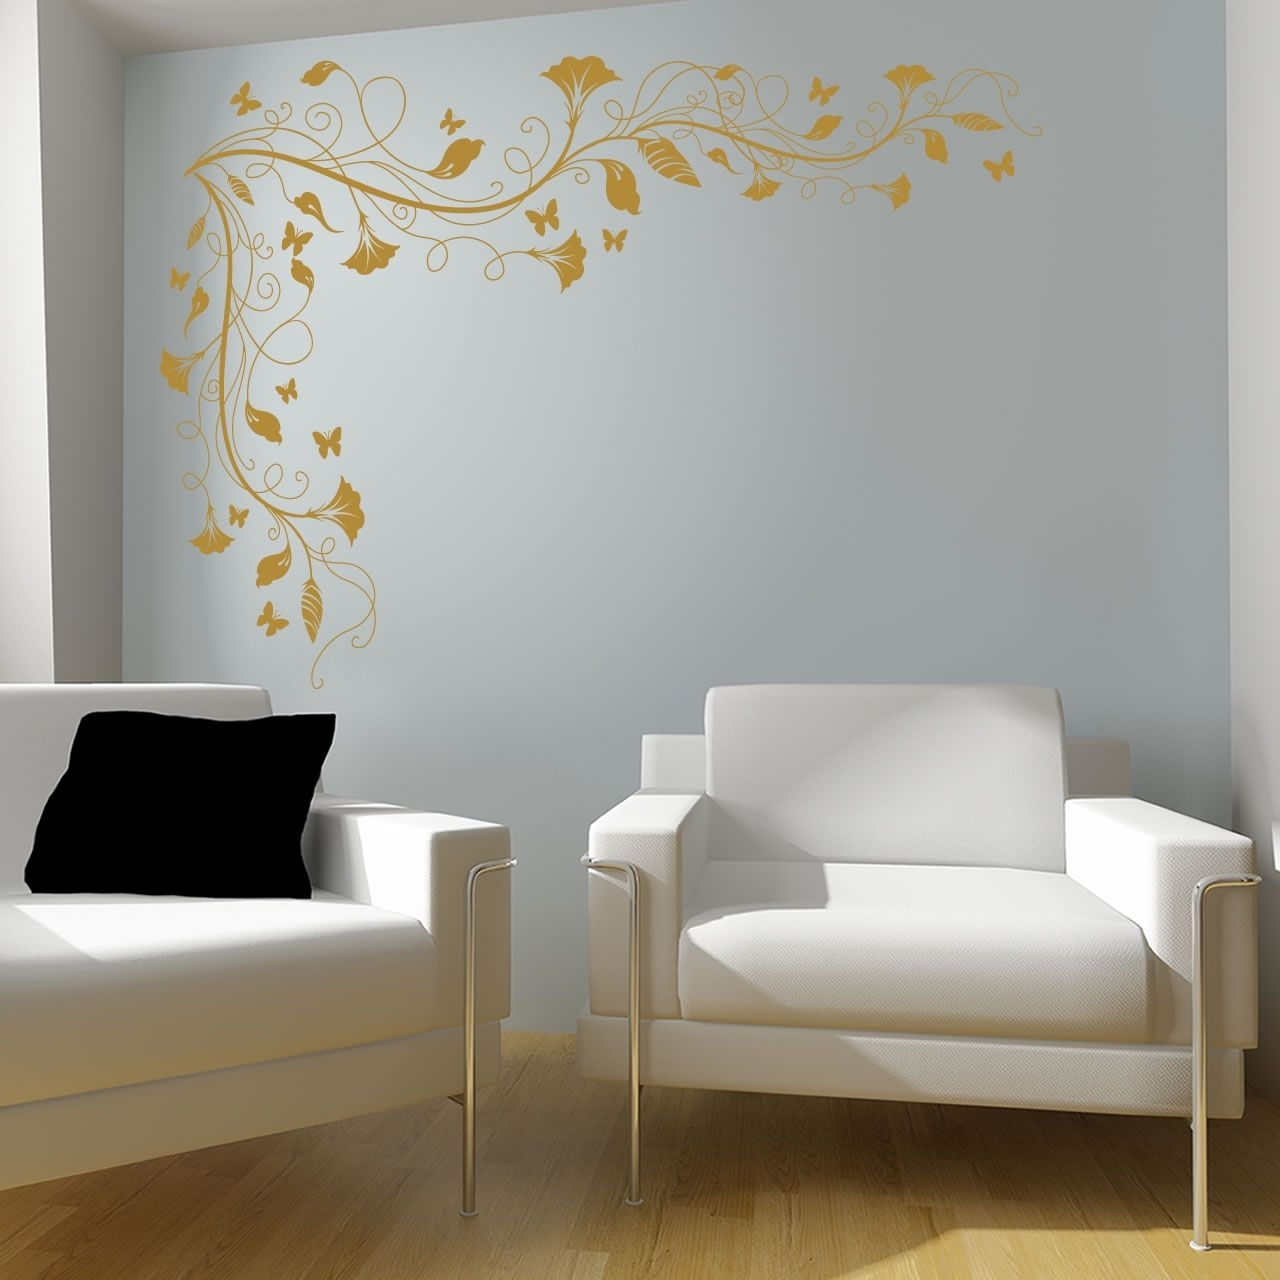 Spartacus Art – Wall Stickers / Decals / Transfers – Vines And Intended For Most Up To Date Corner Wall Art (Gallery 11 of 20)